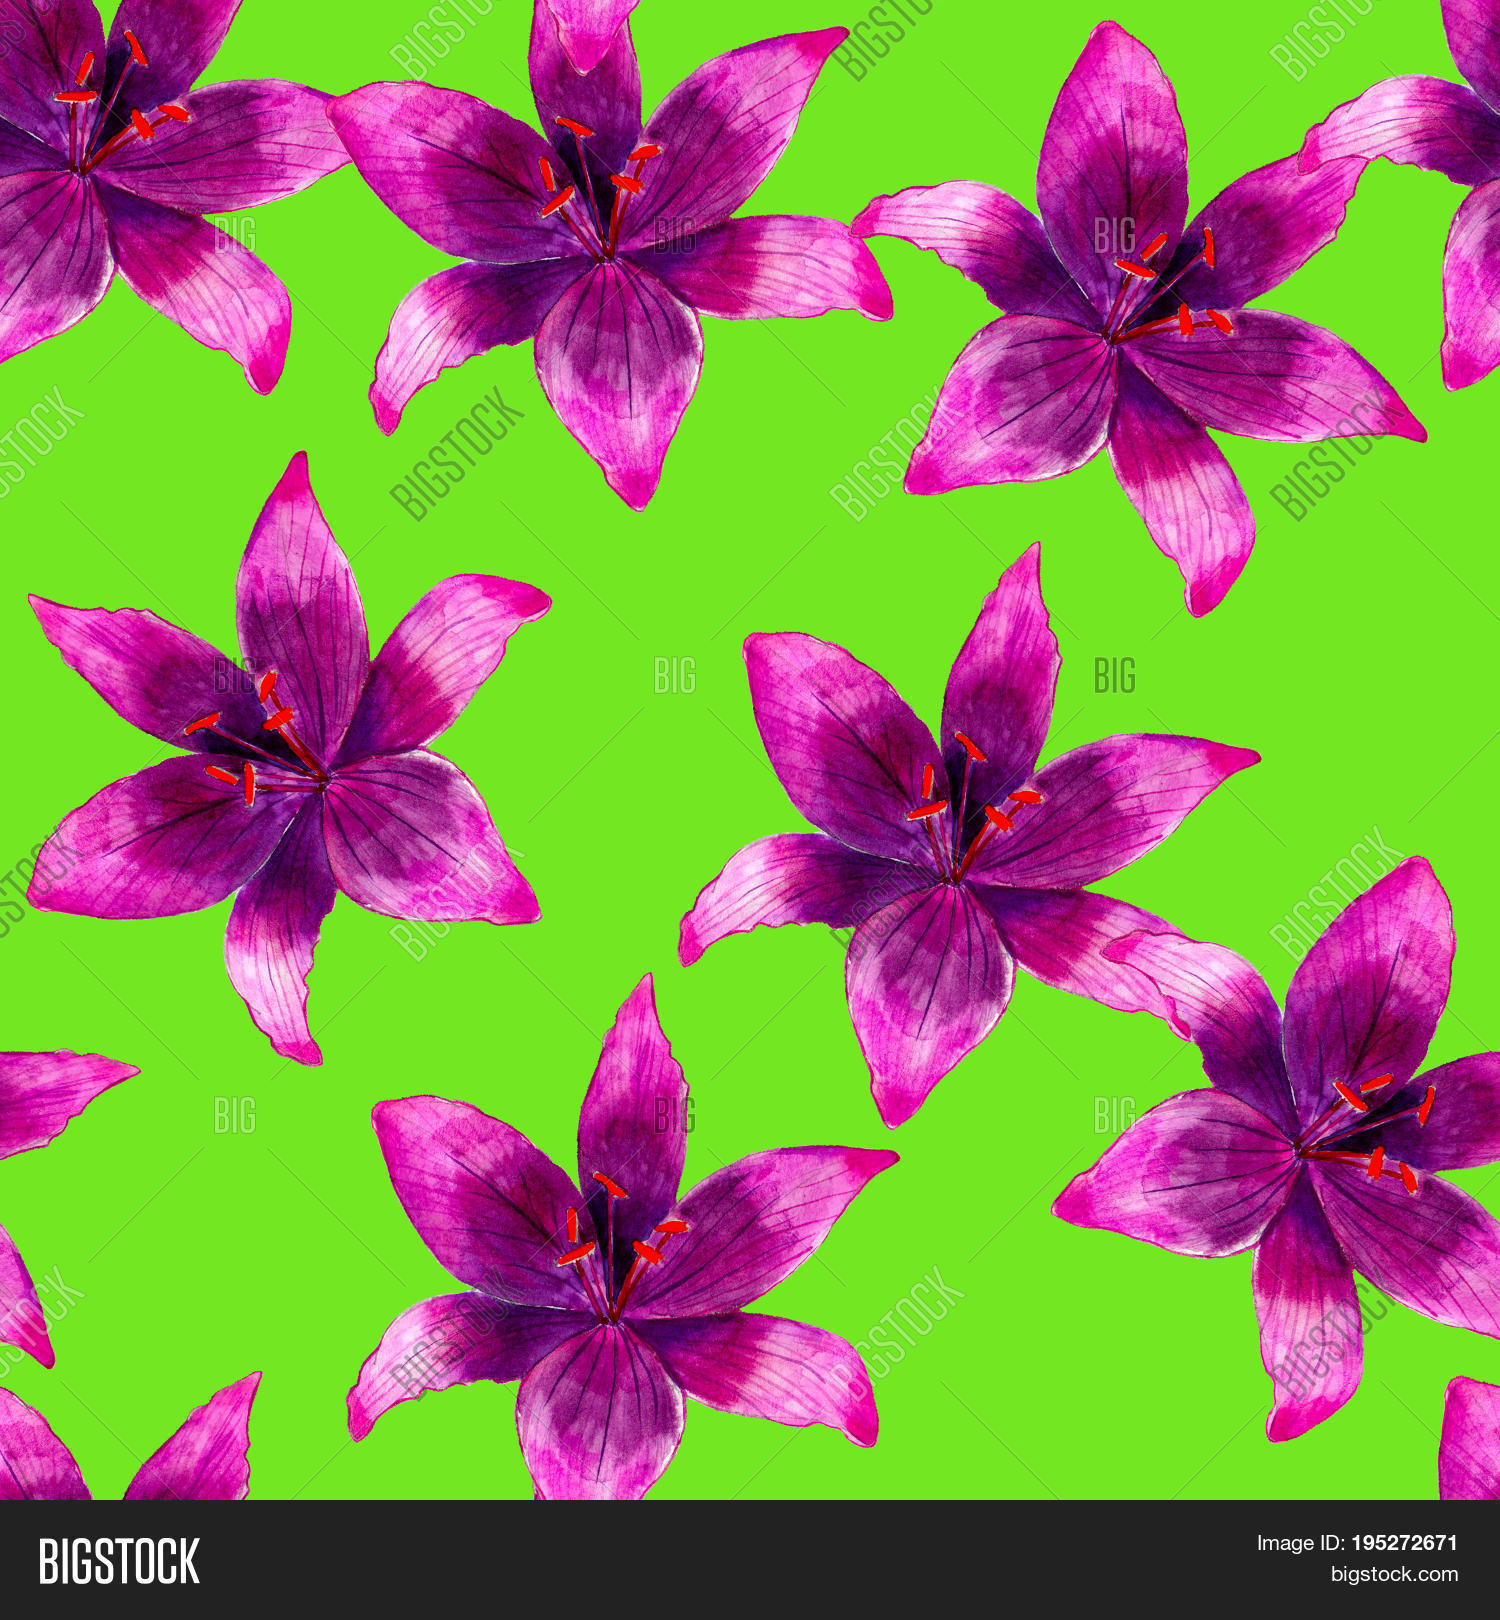 Purple lily flower image photo free trial bigstock purple lily flower watercolor seamless pattern bright tropical flowers isolated on green background hand izmirmasajfo